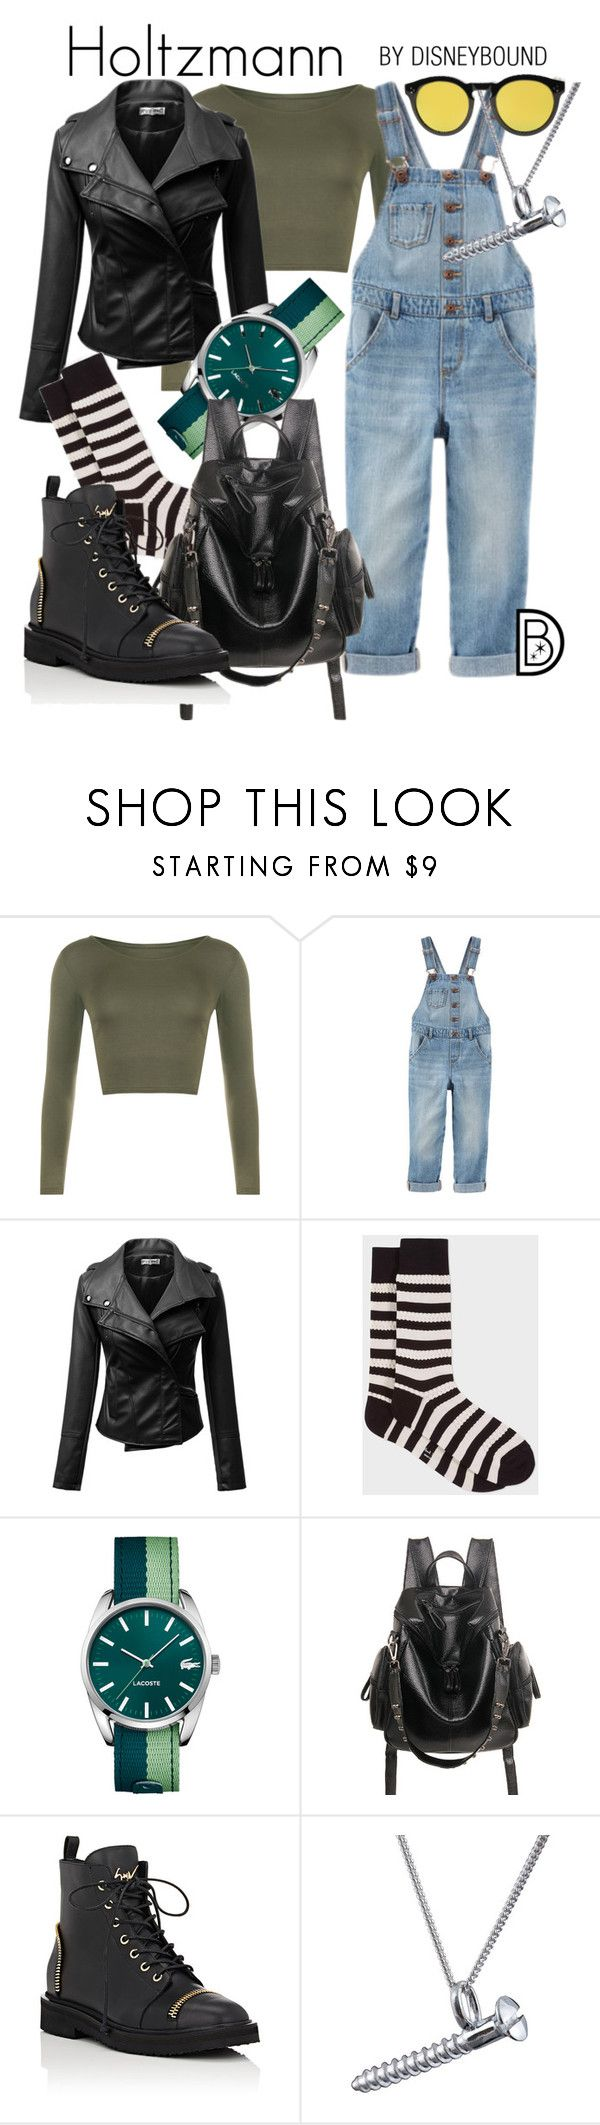 """""""Holtzmann"""" by leslieakay ❤ liked on Polyvore featuring WearAll, Paul Smith, Lacoste, Giuseppe Zanotti, Edge Only, Illesteva and ghostbusters"""